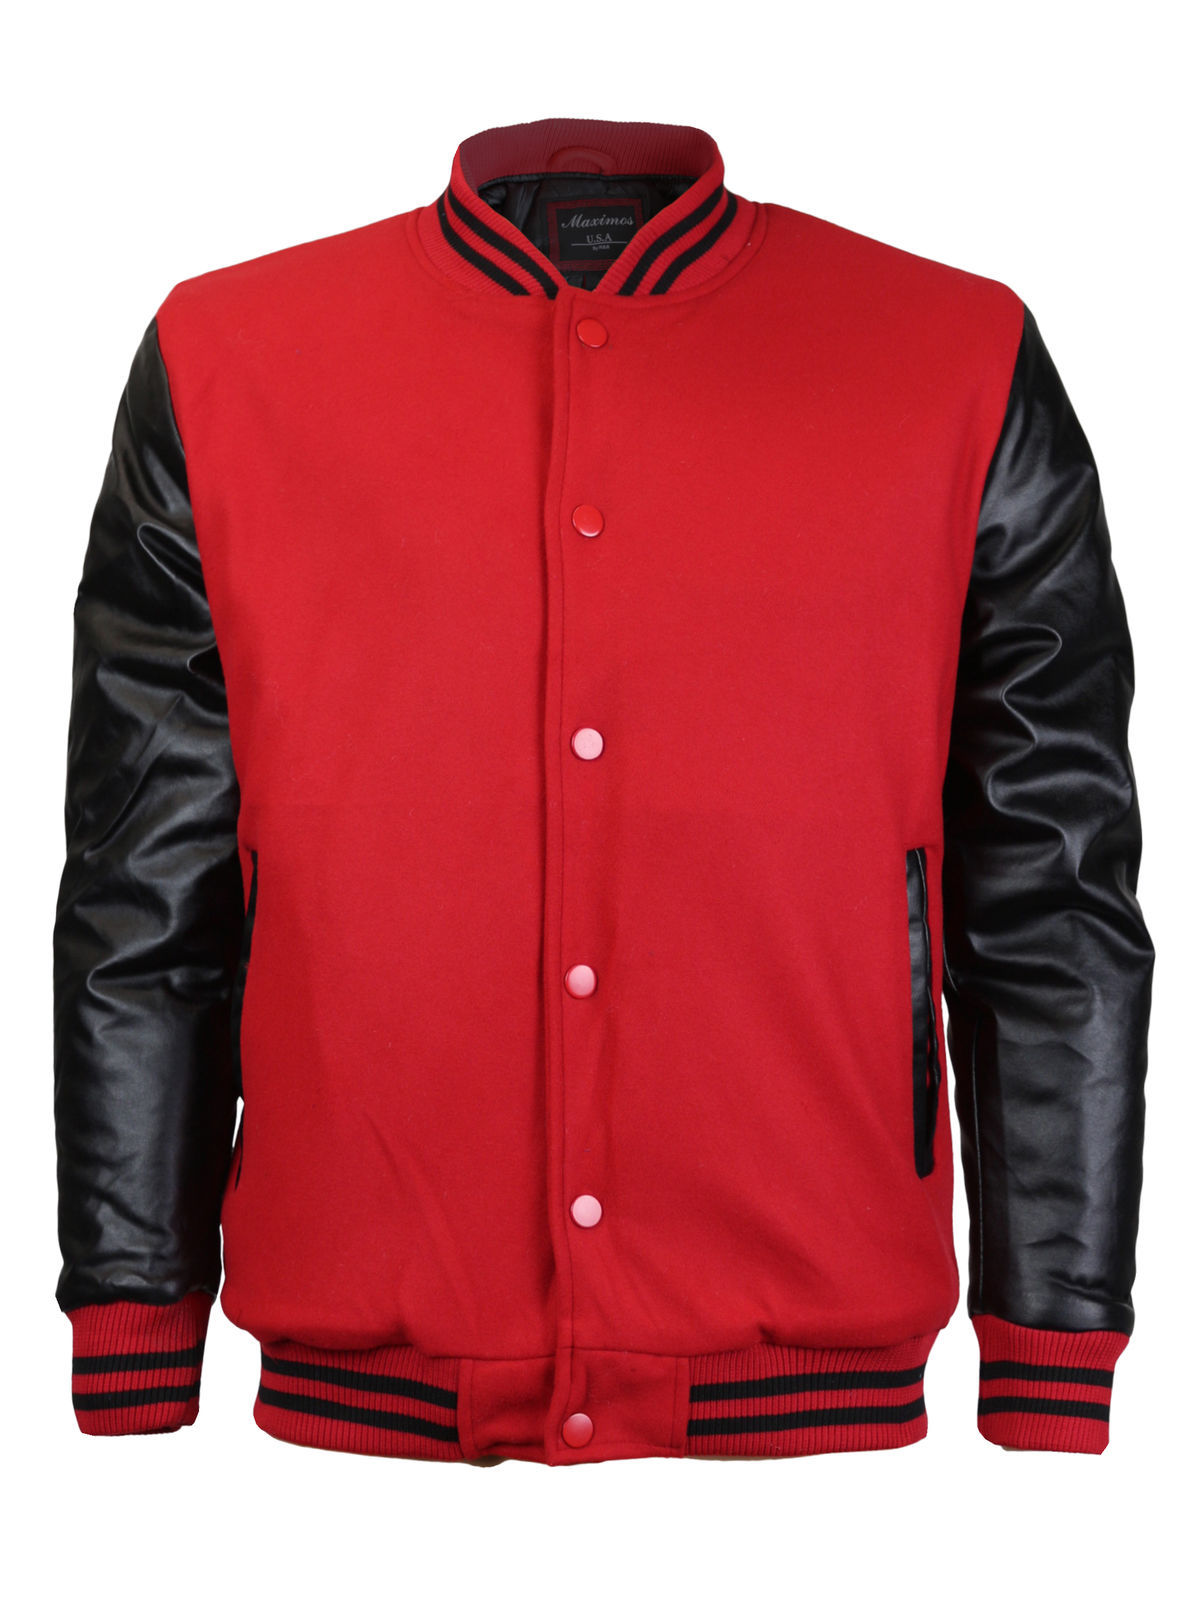 Men's Snap Button Baseball Letterman Varsity Jacket Pre-Owned Red Black size L